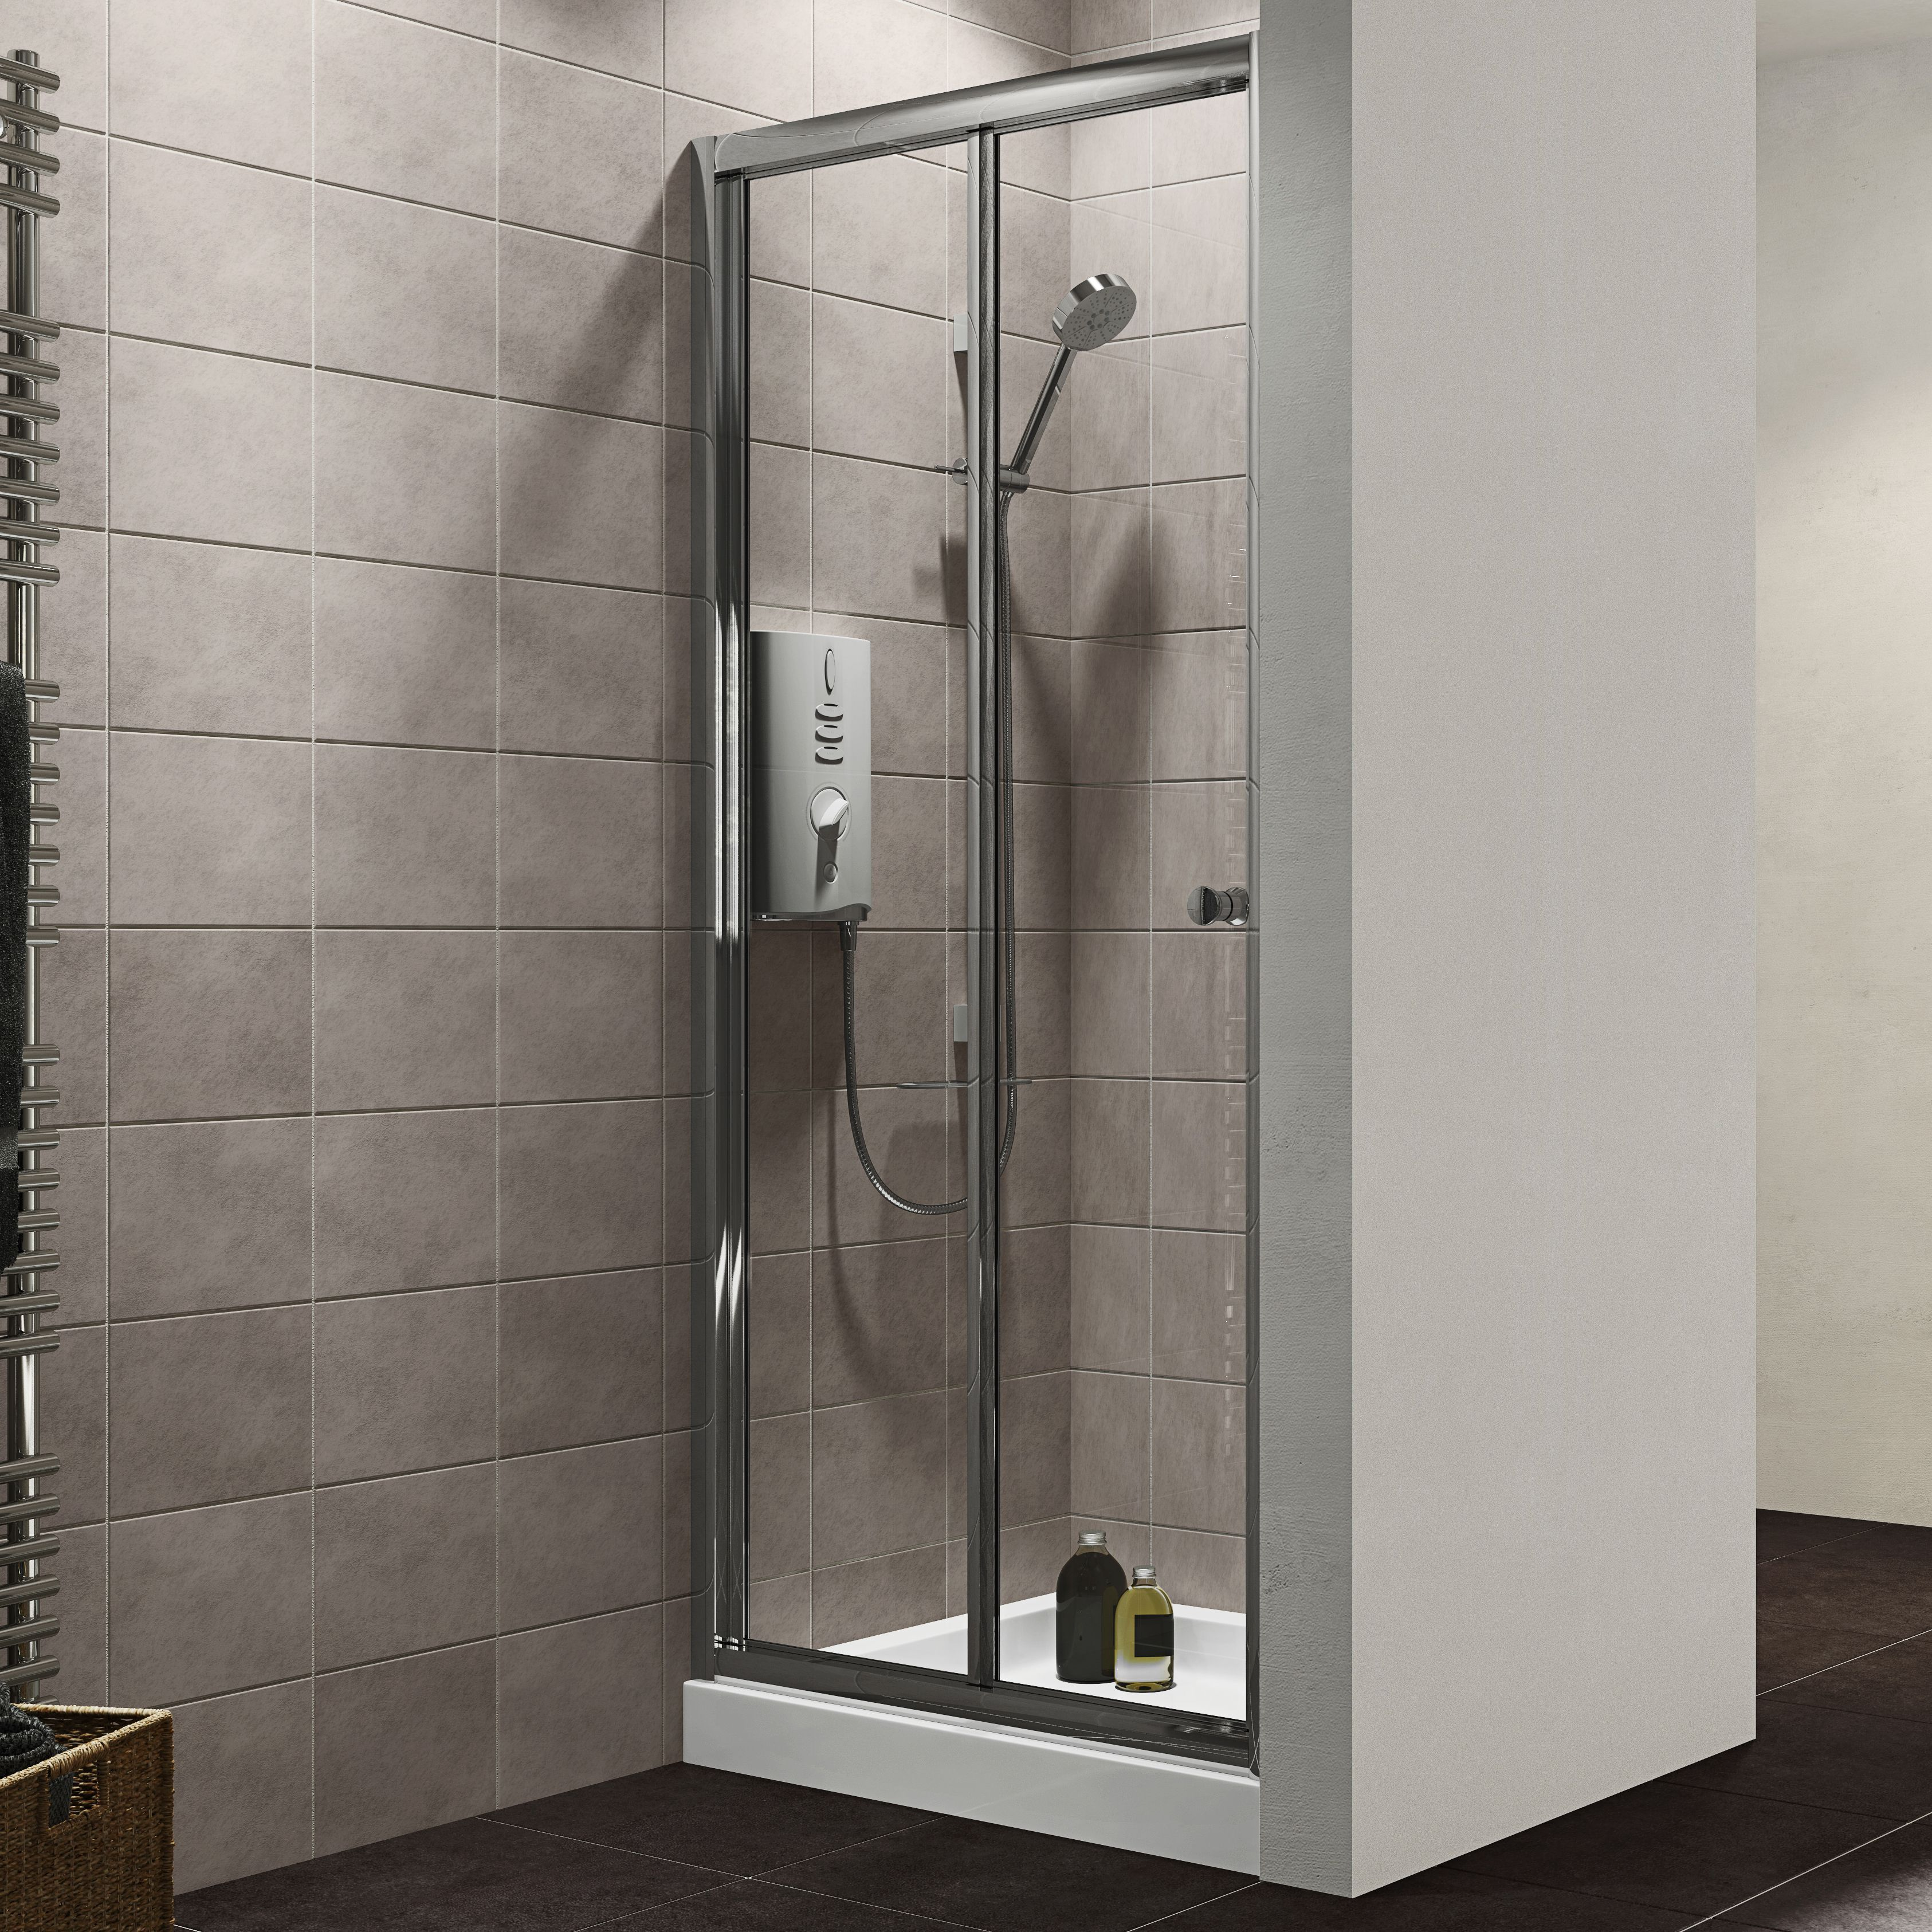 Plumbsure Bi-Fold Shower Door (W)800mm & Plumbsure Bi-Fold Shower Door (W)800mm | Departments | DIY at Bu0026Q ... pezcame.com